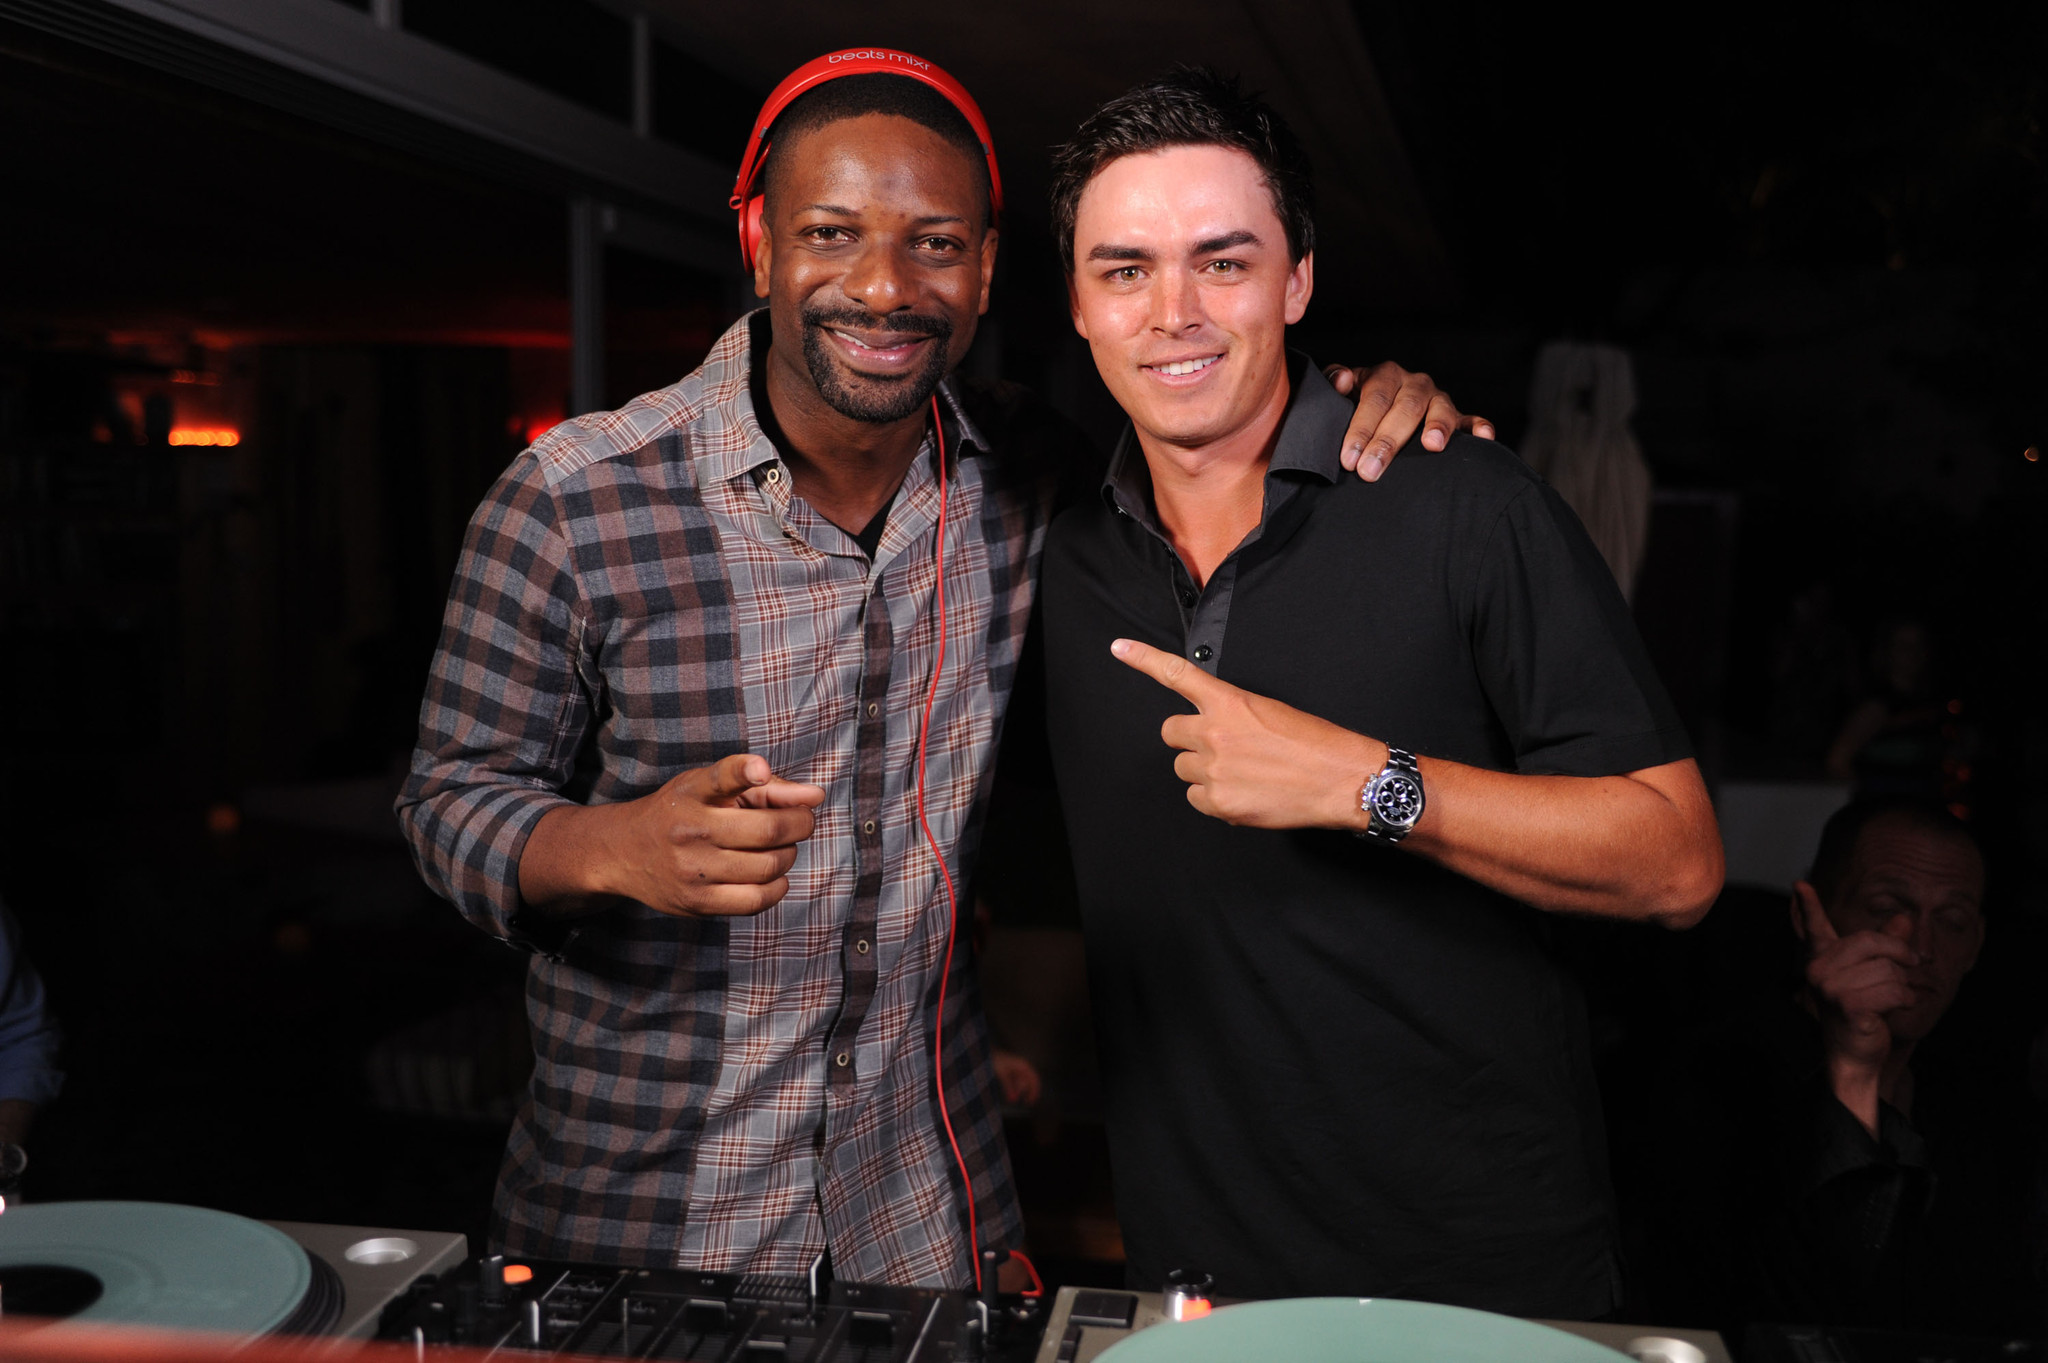 World Golf Championships-Cadillac Championship parties - DJ Irie and Rickie Fowler